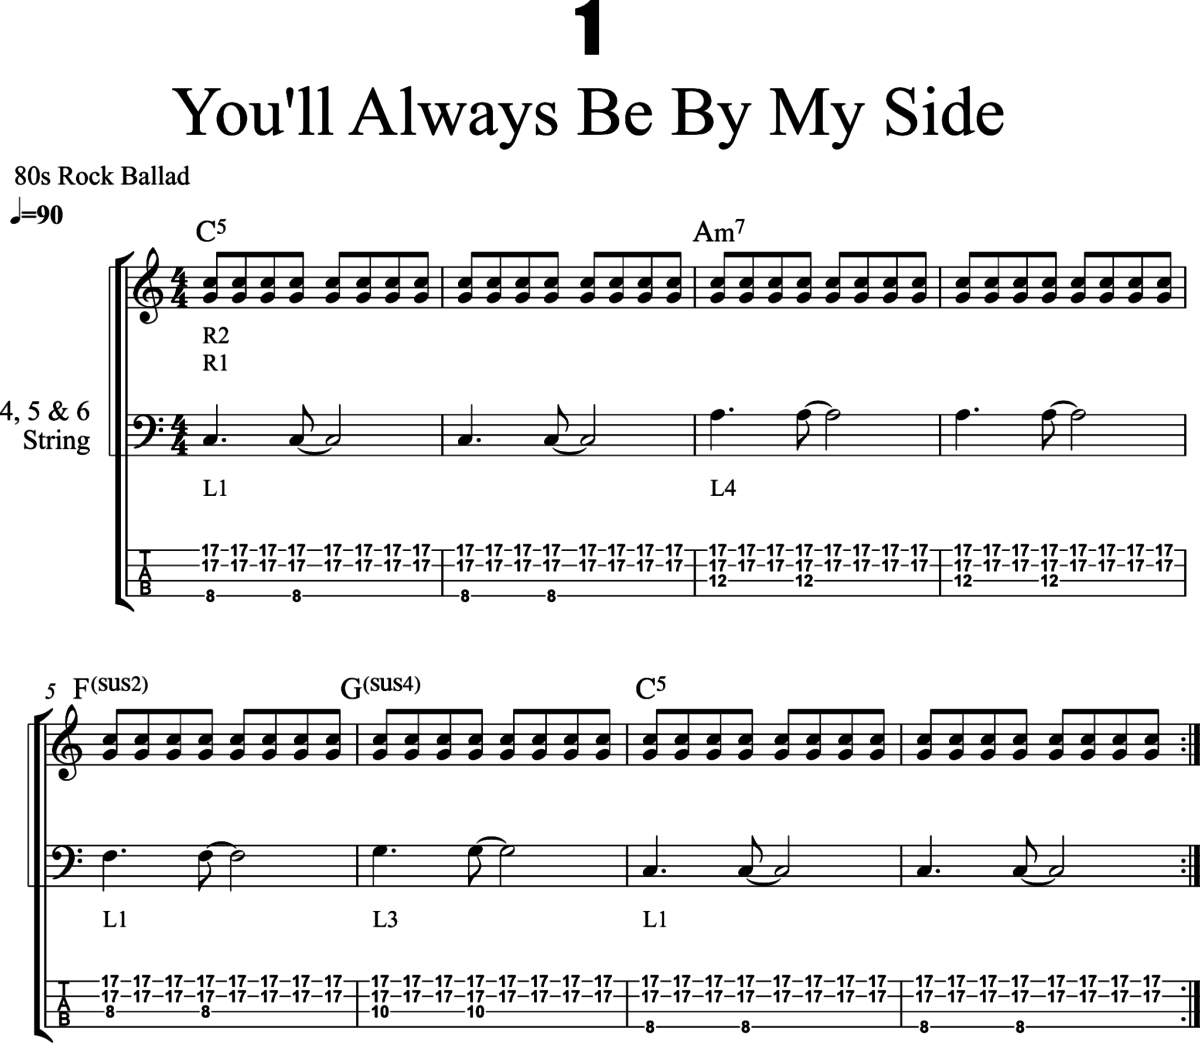 Fig. 1 - Excerpt from Tapping Grooves: Vol.1